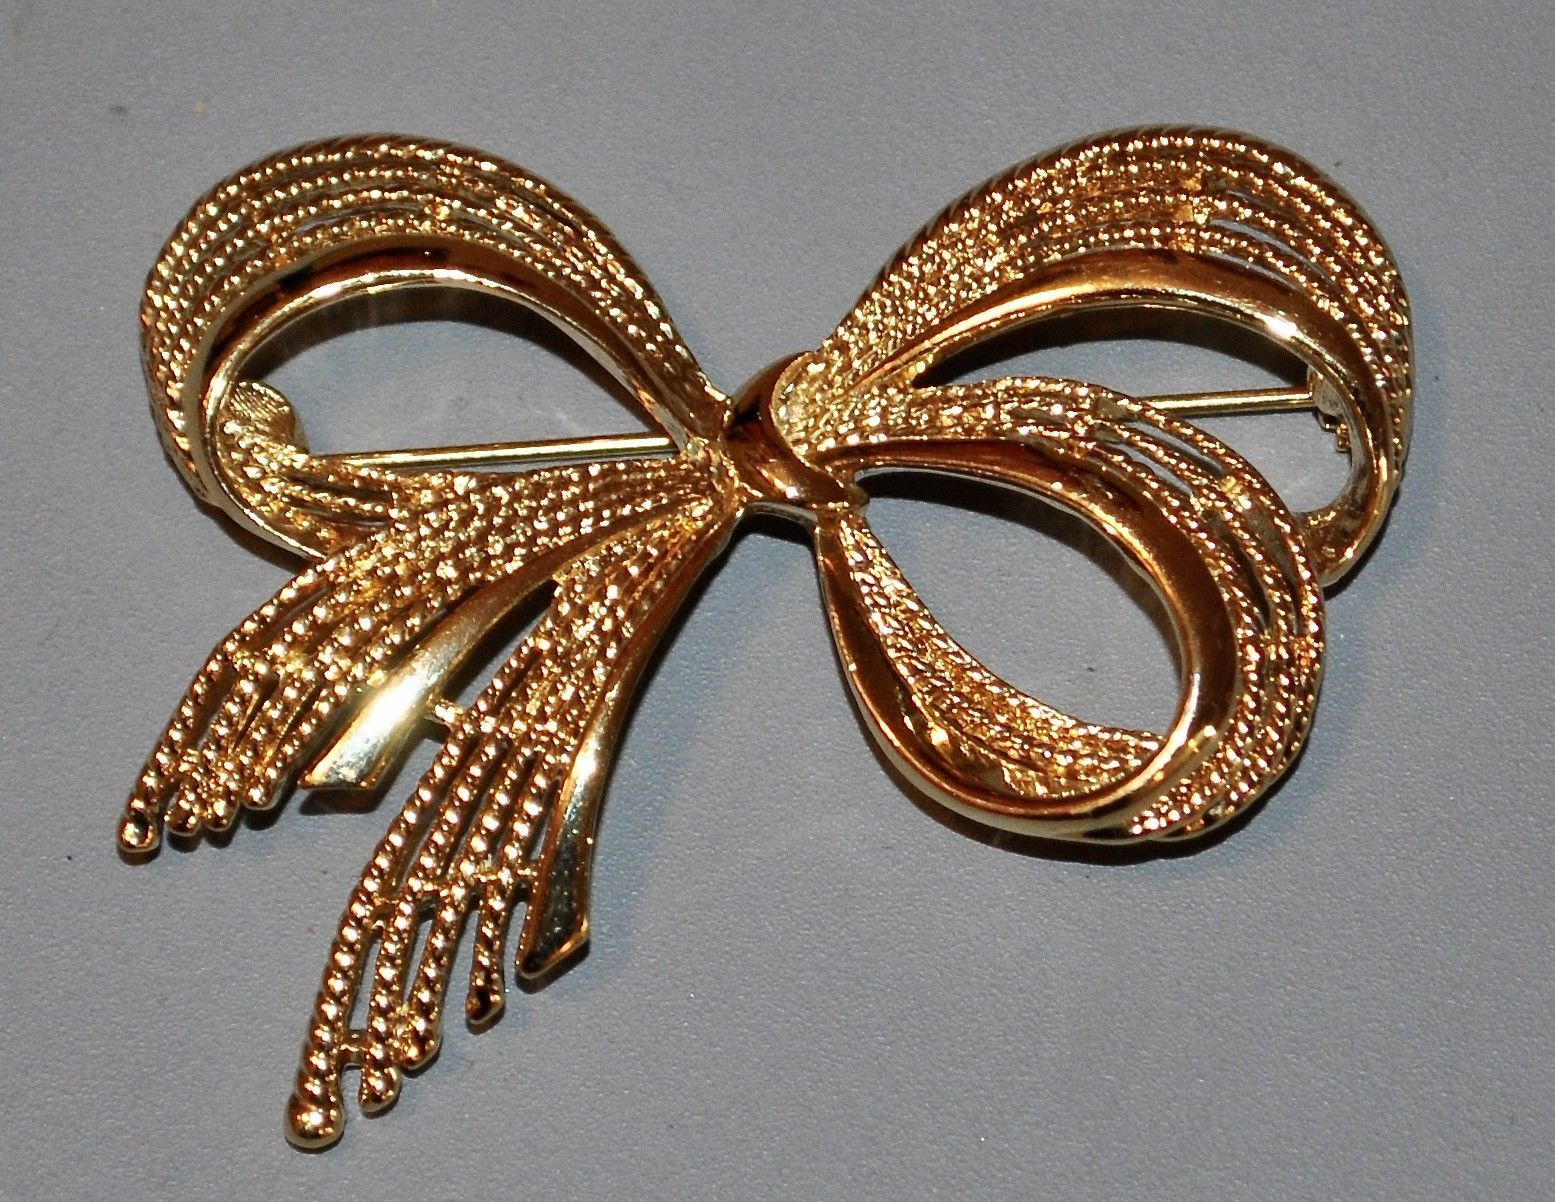 Vintage Napier Gold Toned Bow BROOCH Pin and 41 similar items